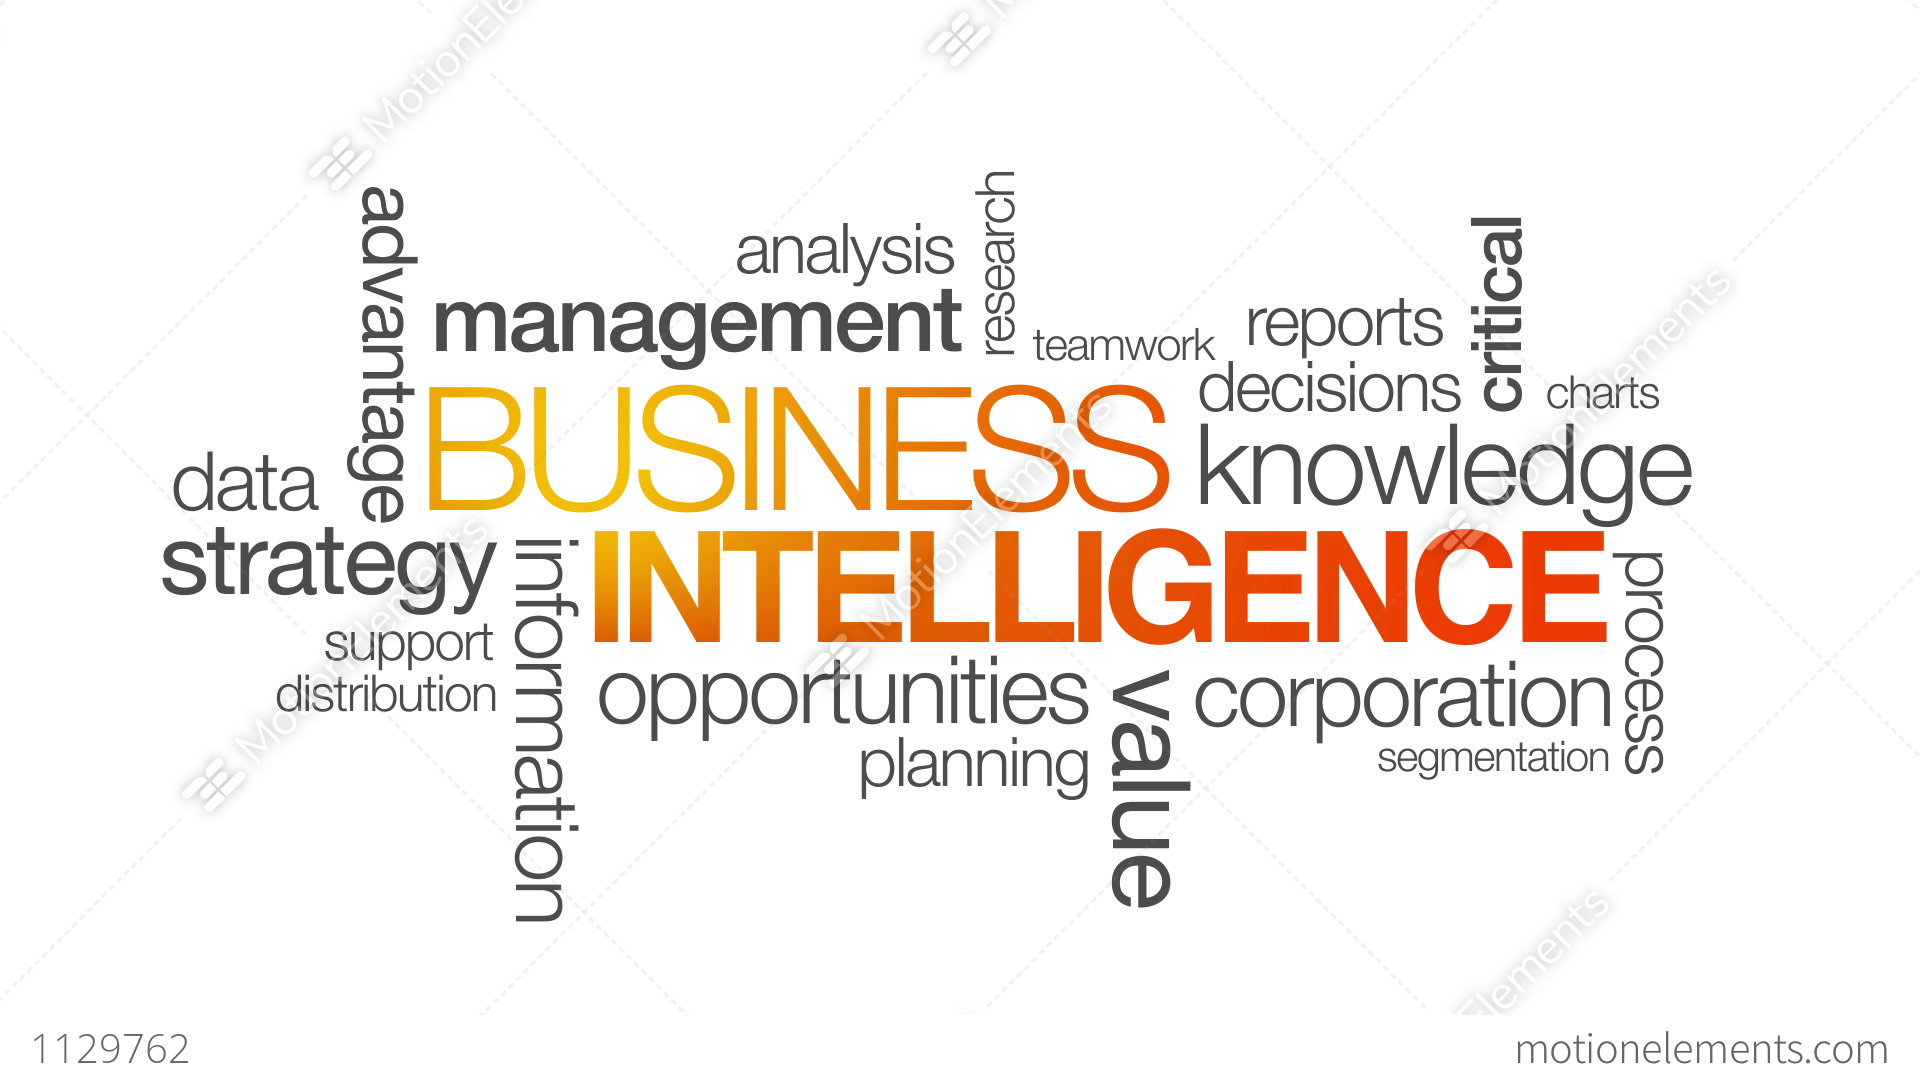 me1129762-business-intelligence-hd-a0265.jpg